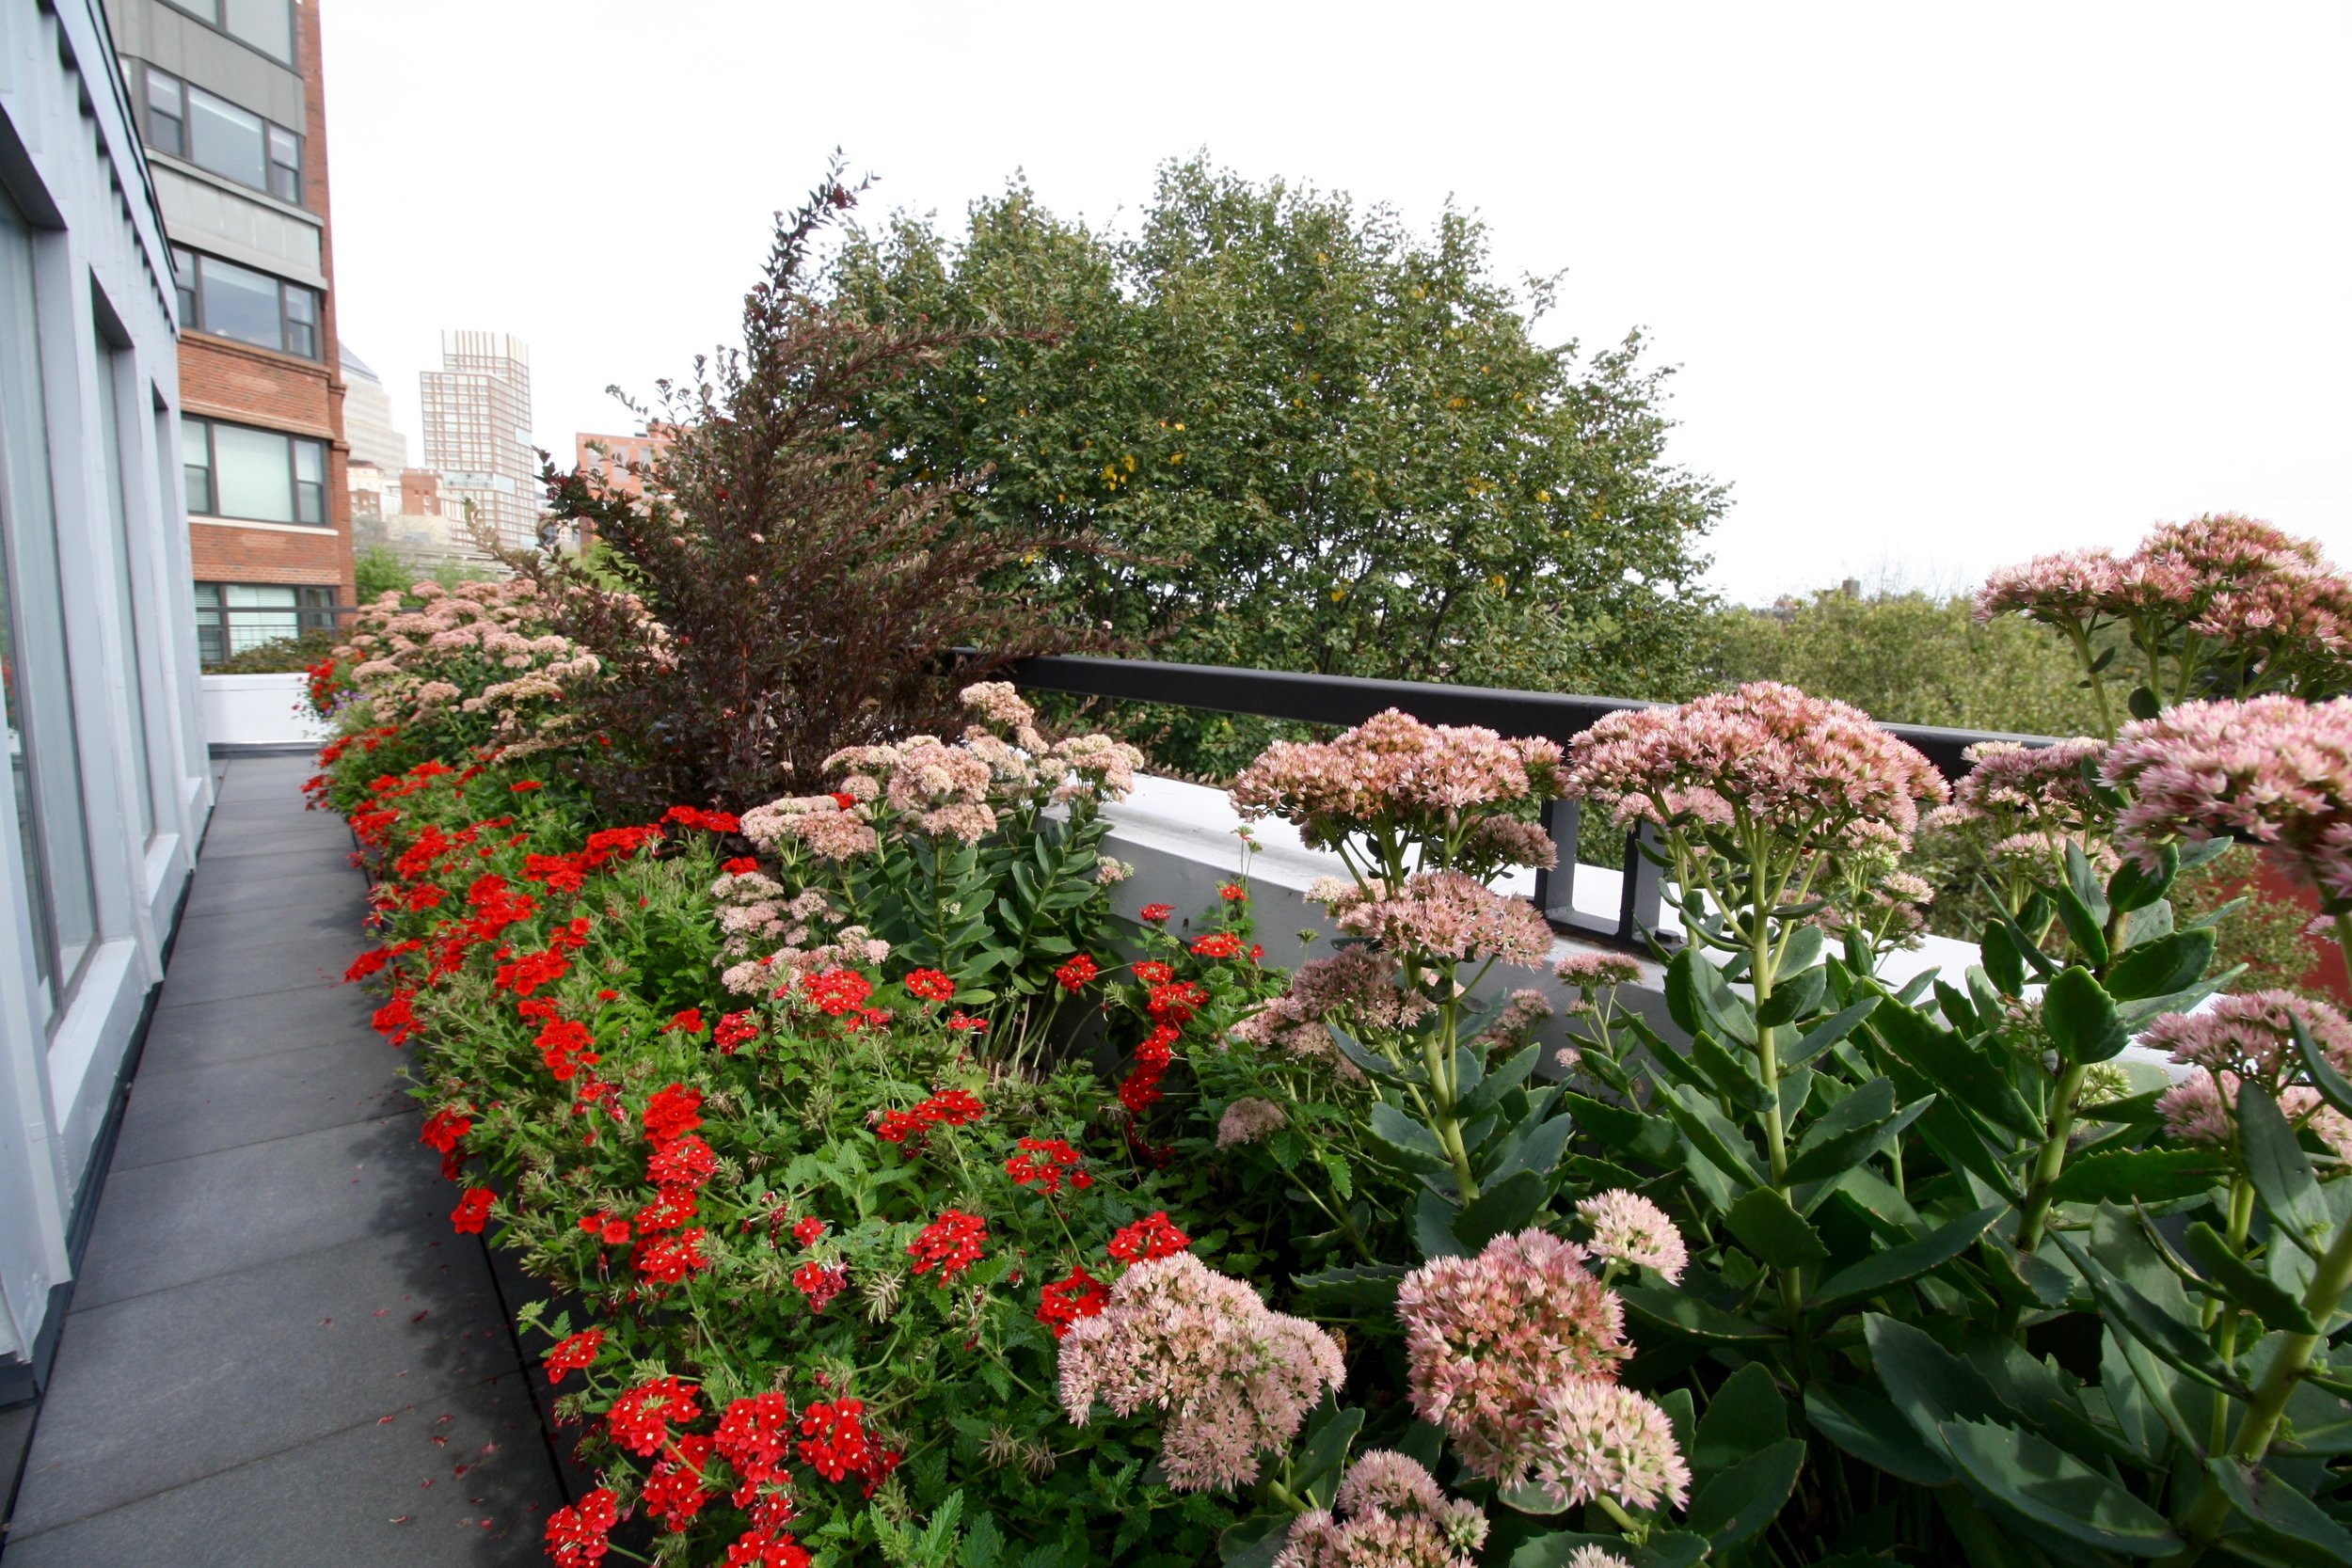 recover-green-roofs-rooftop-patio-boston-2016-11.jpg